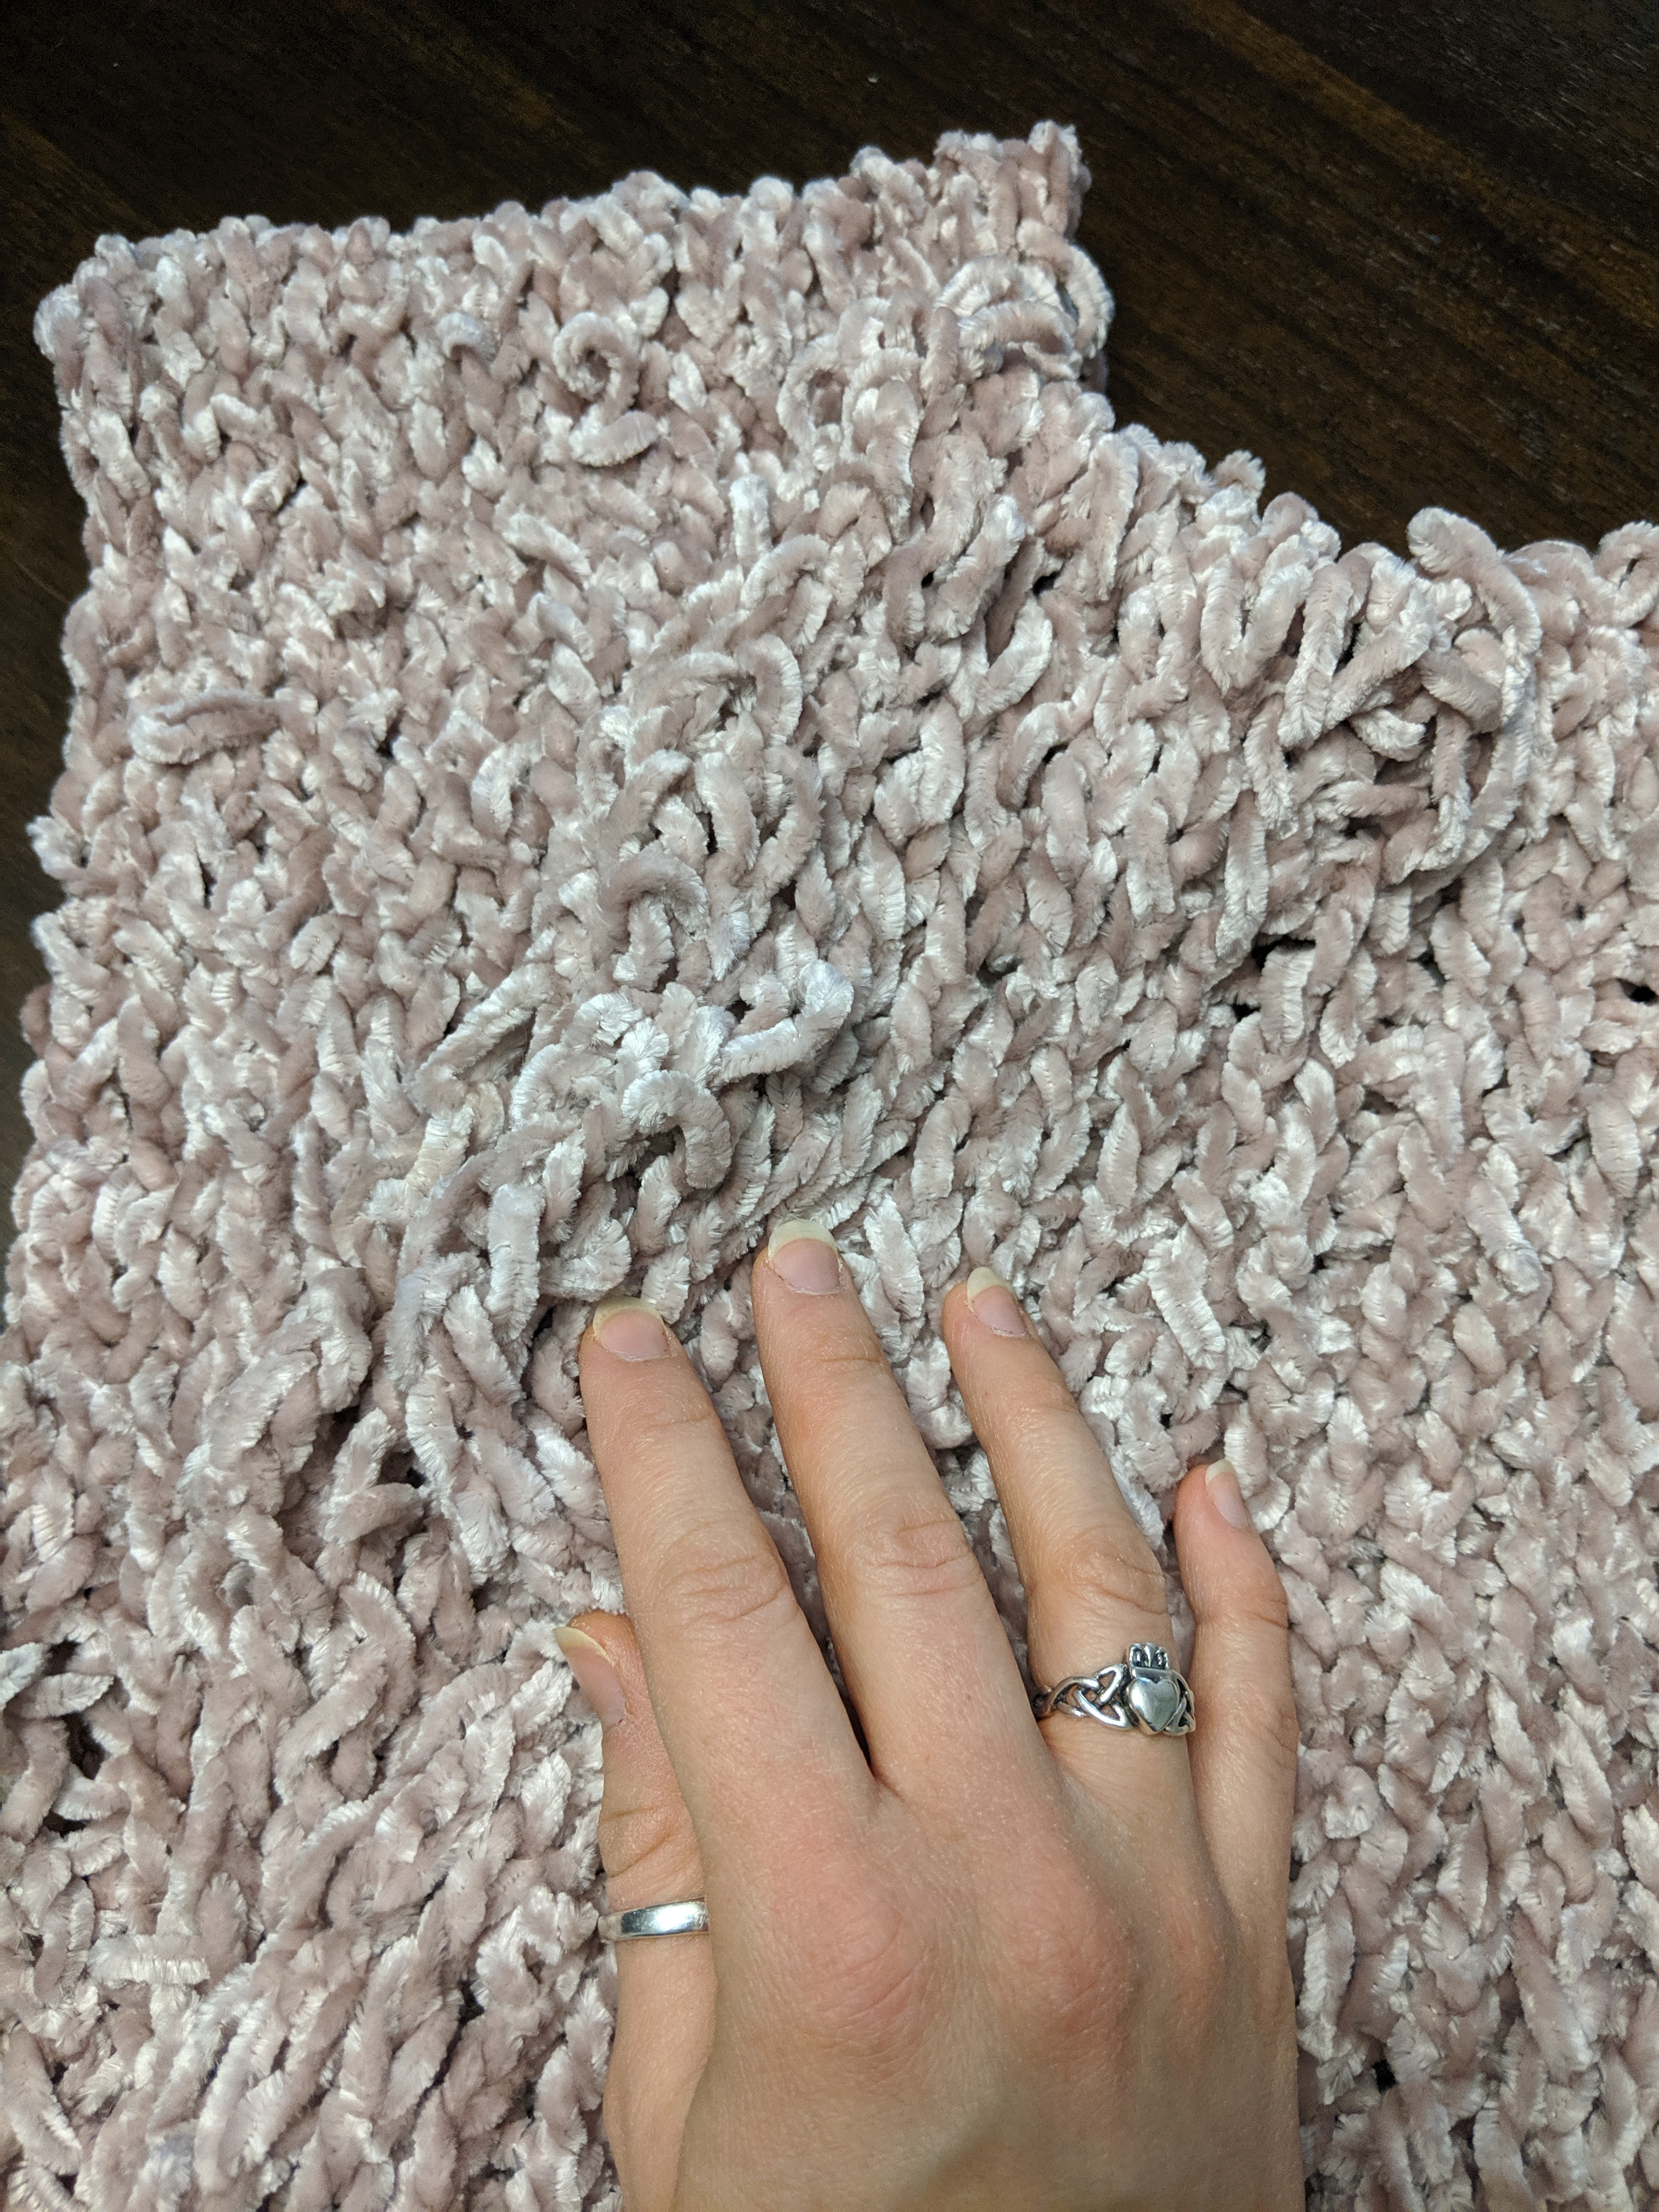 A hand caresses a ribbed infinity scarf made of velvet yarn